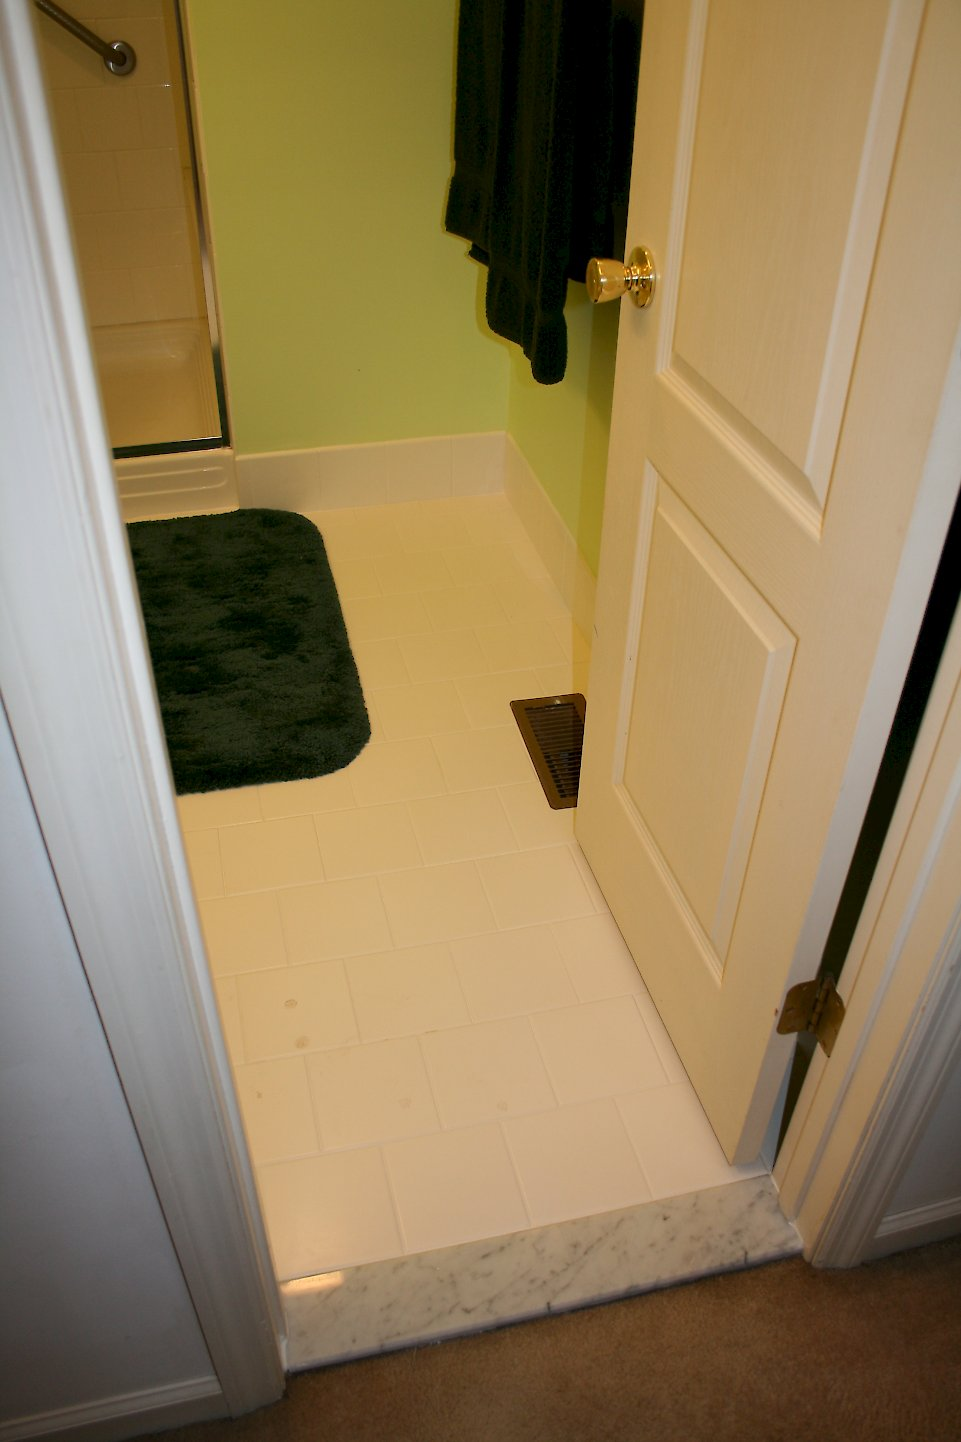 Marble threshold entering the bathroom.